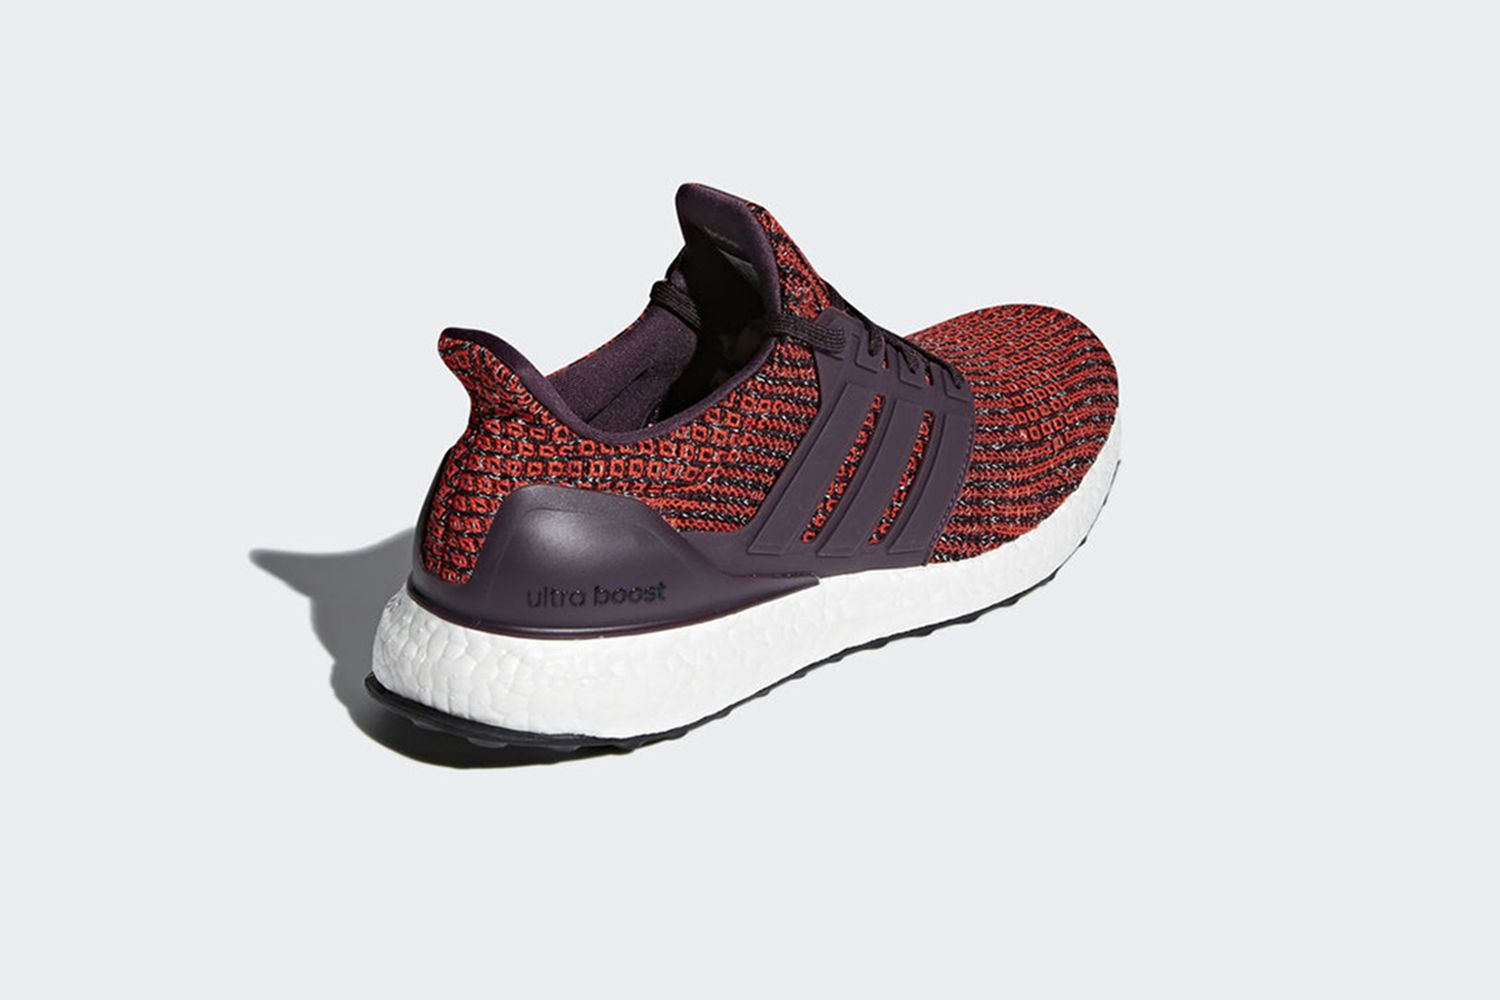 Ultraboost Sneakers